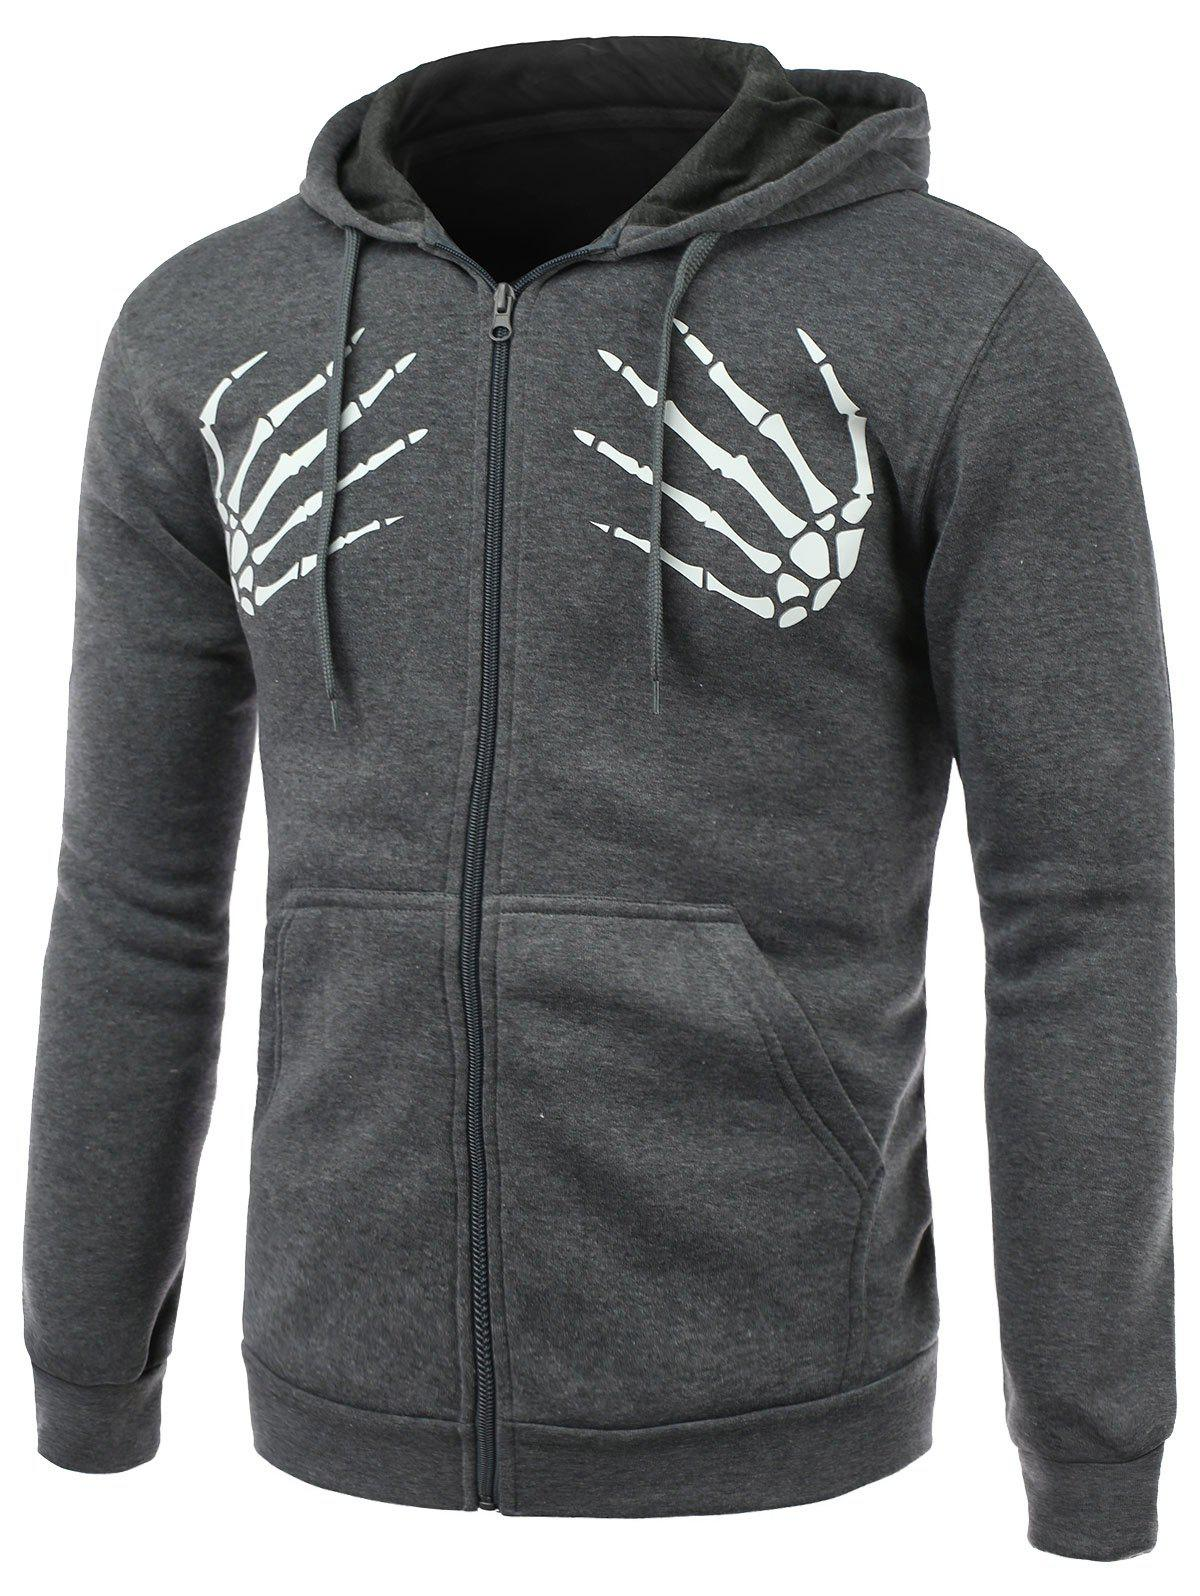 Skull Hands Print Long Sleeve Fleece Zip-Up Hoodie - DEEP GRAY 2XL